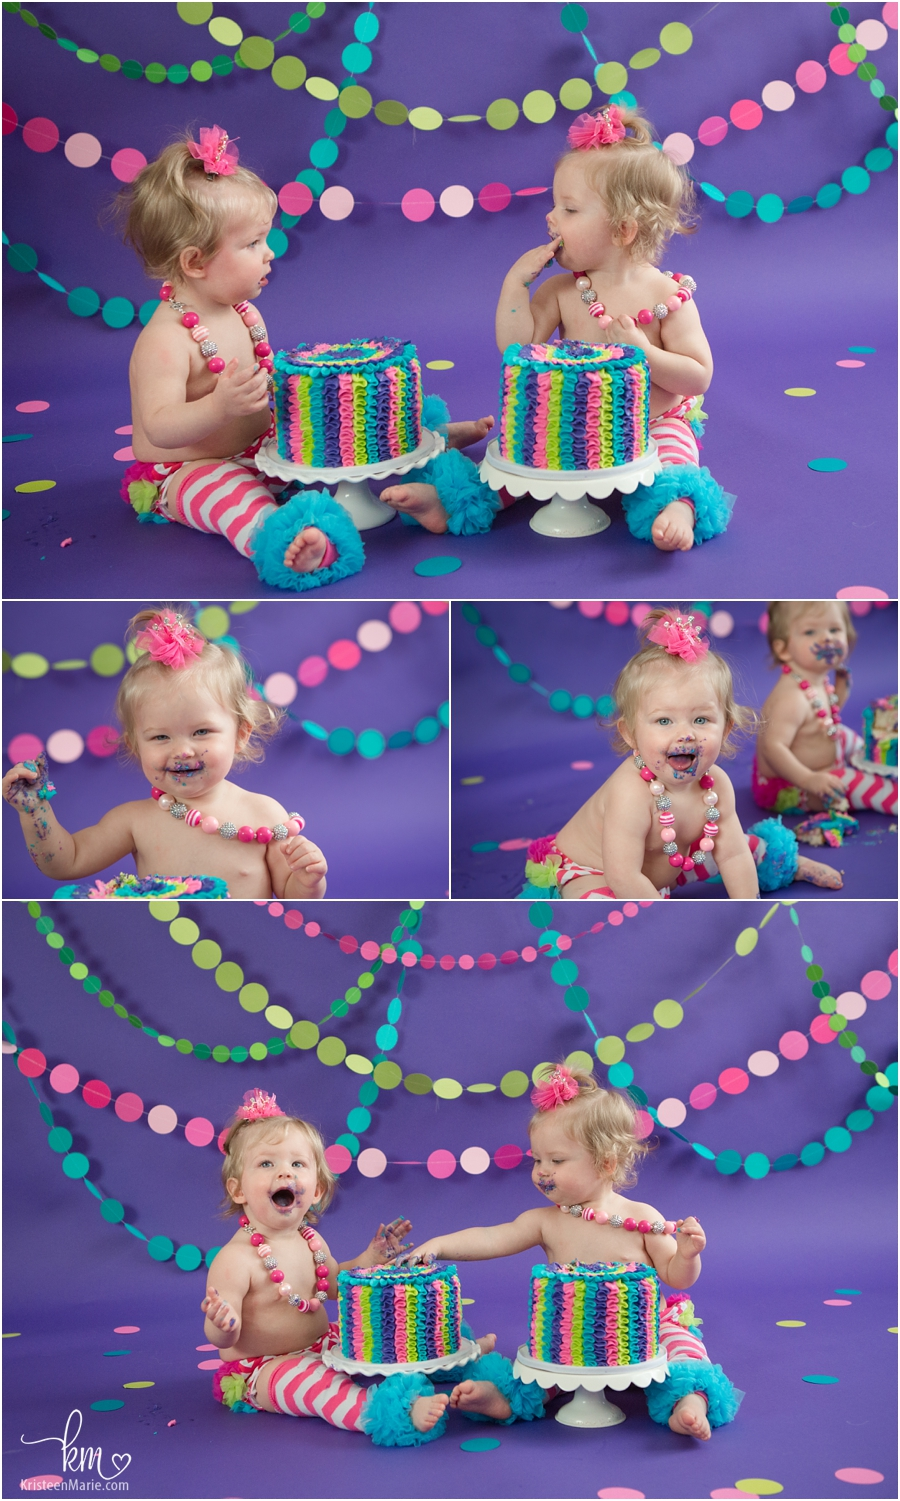 twin girls neon colored cake smash session - 1st birthday photography